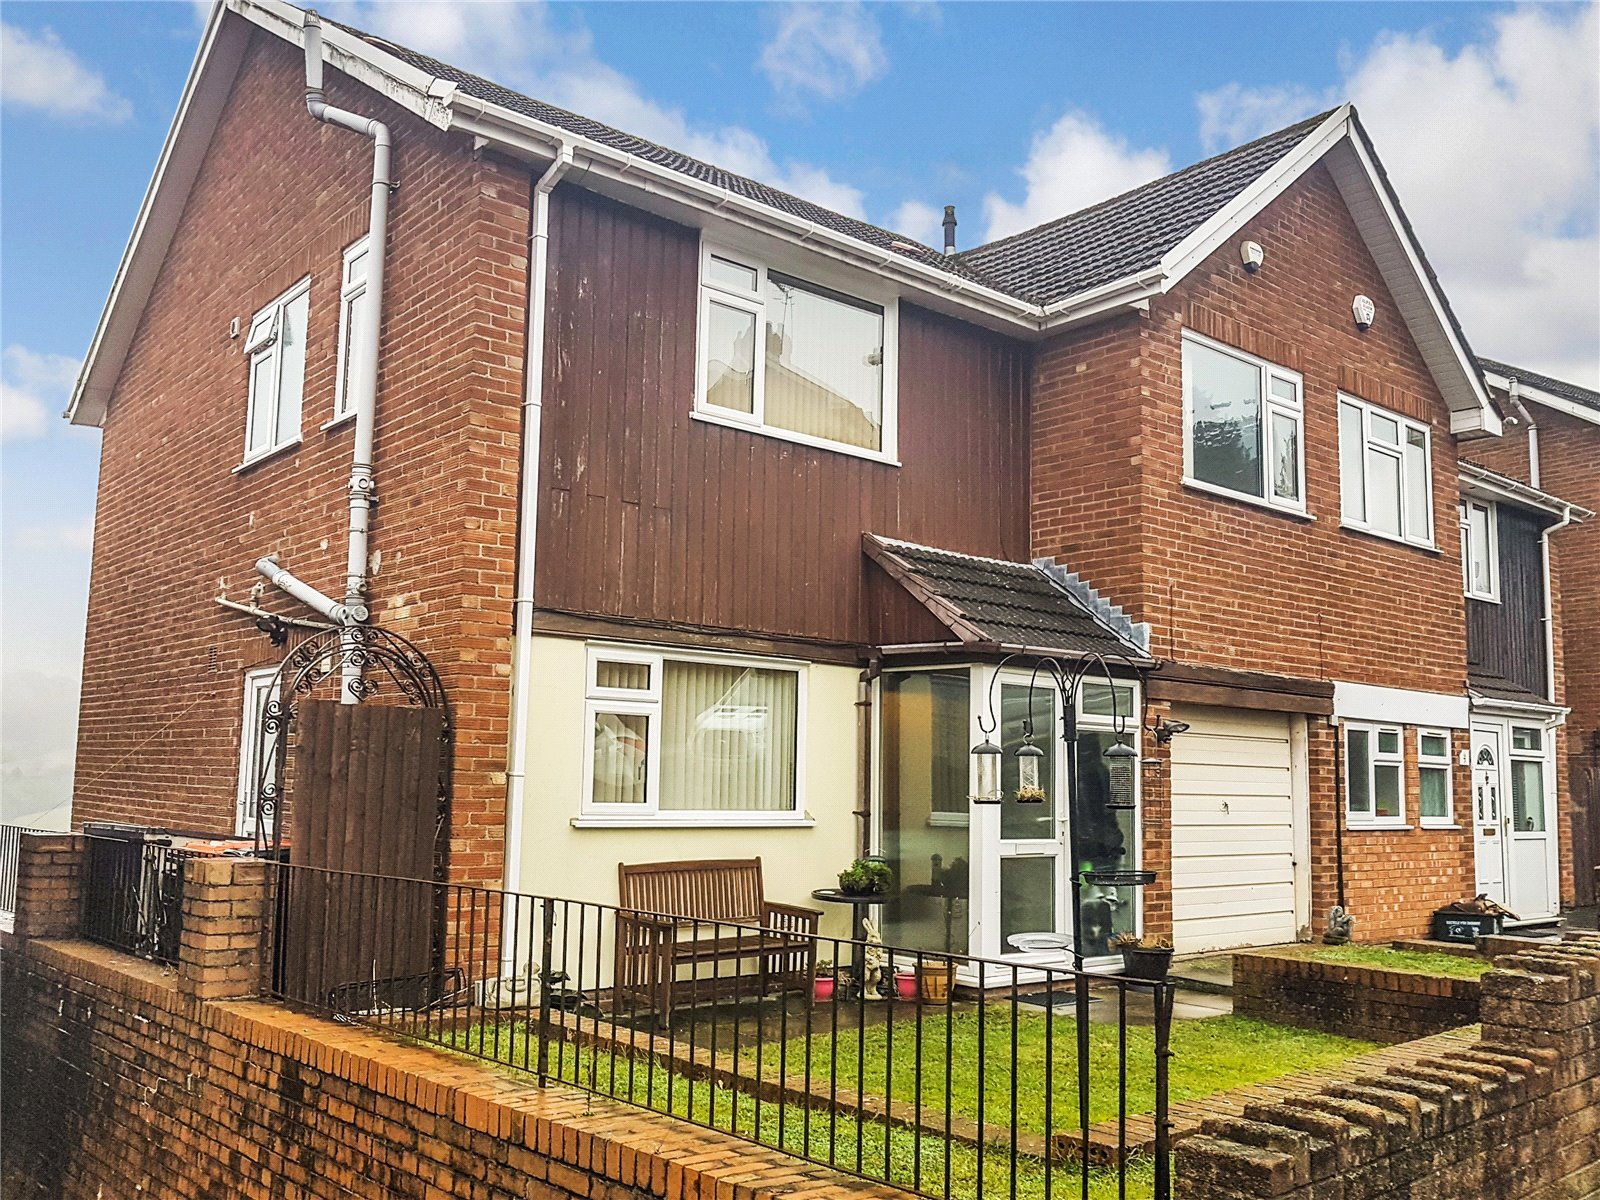 4 Bedrooms Semi Detached House for sale in Yewberry Lane Malpas Newport NP20